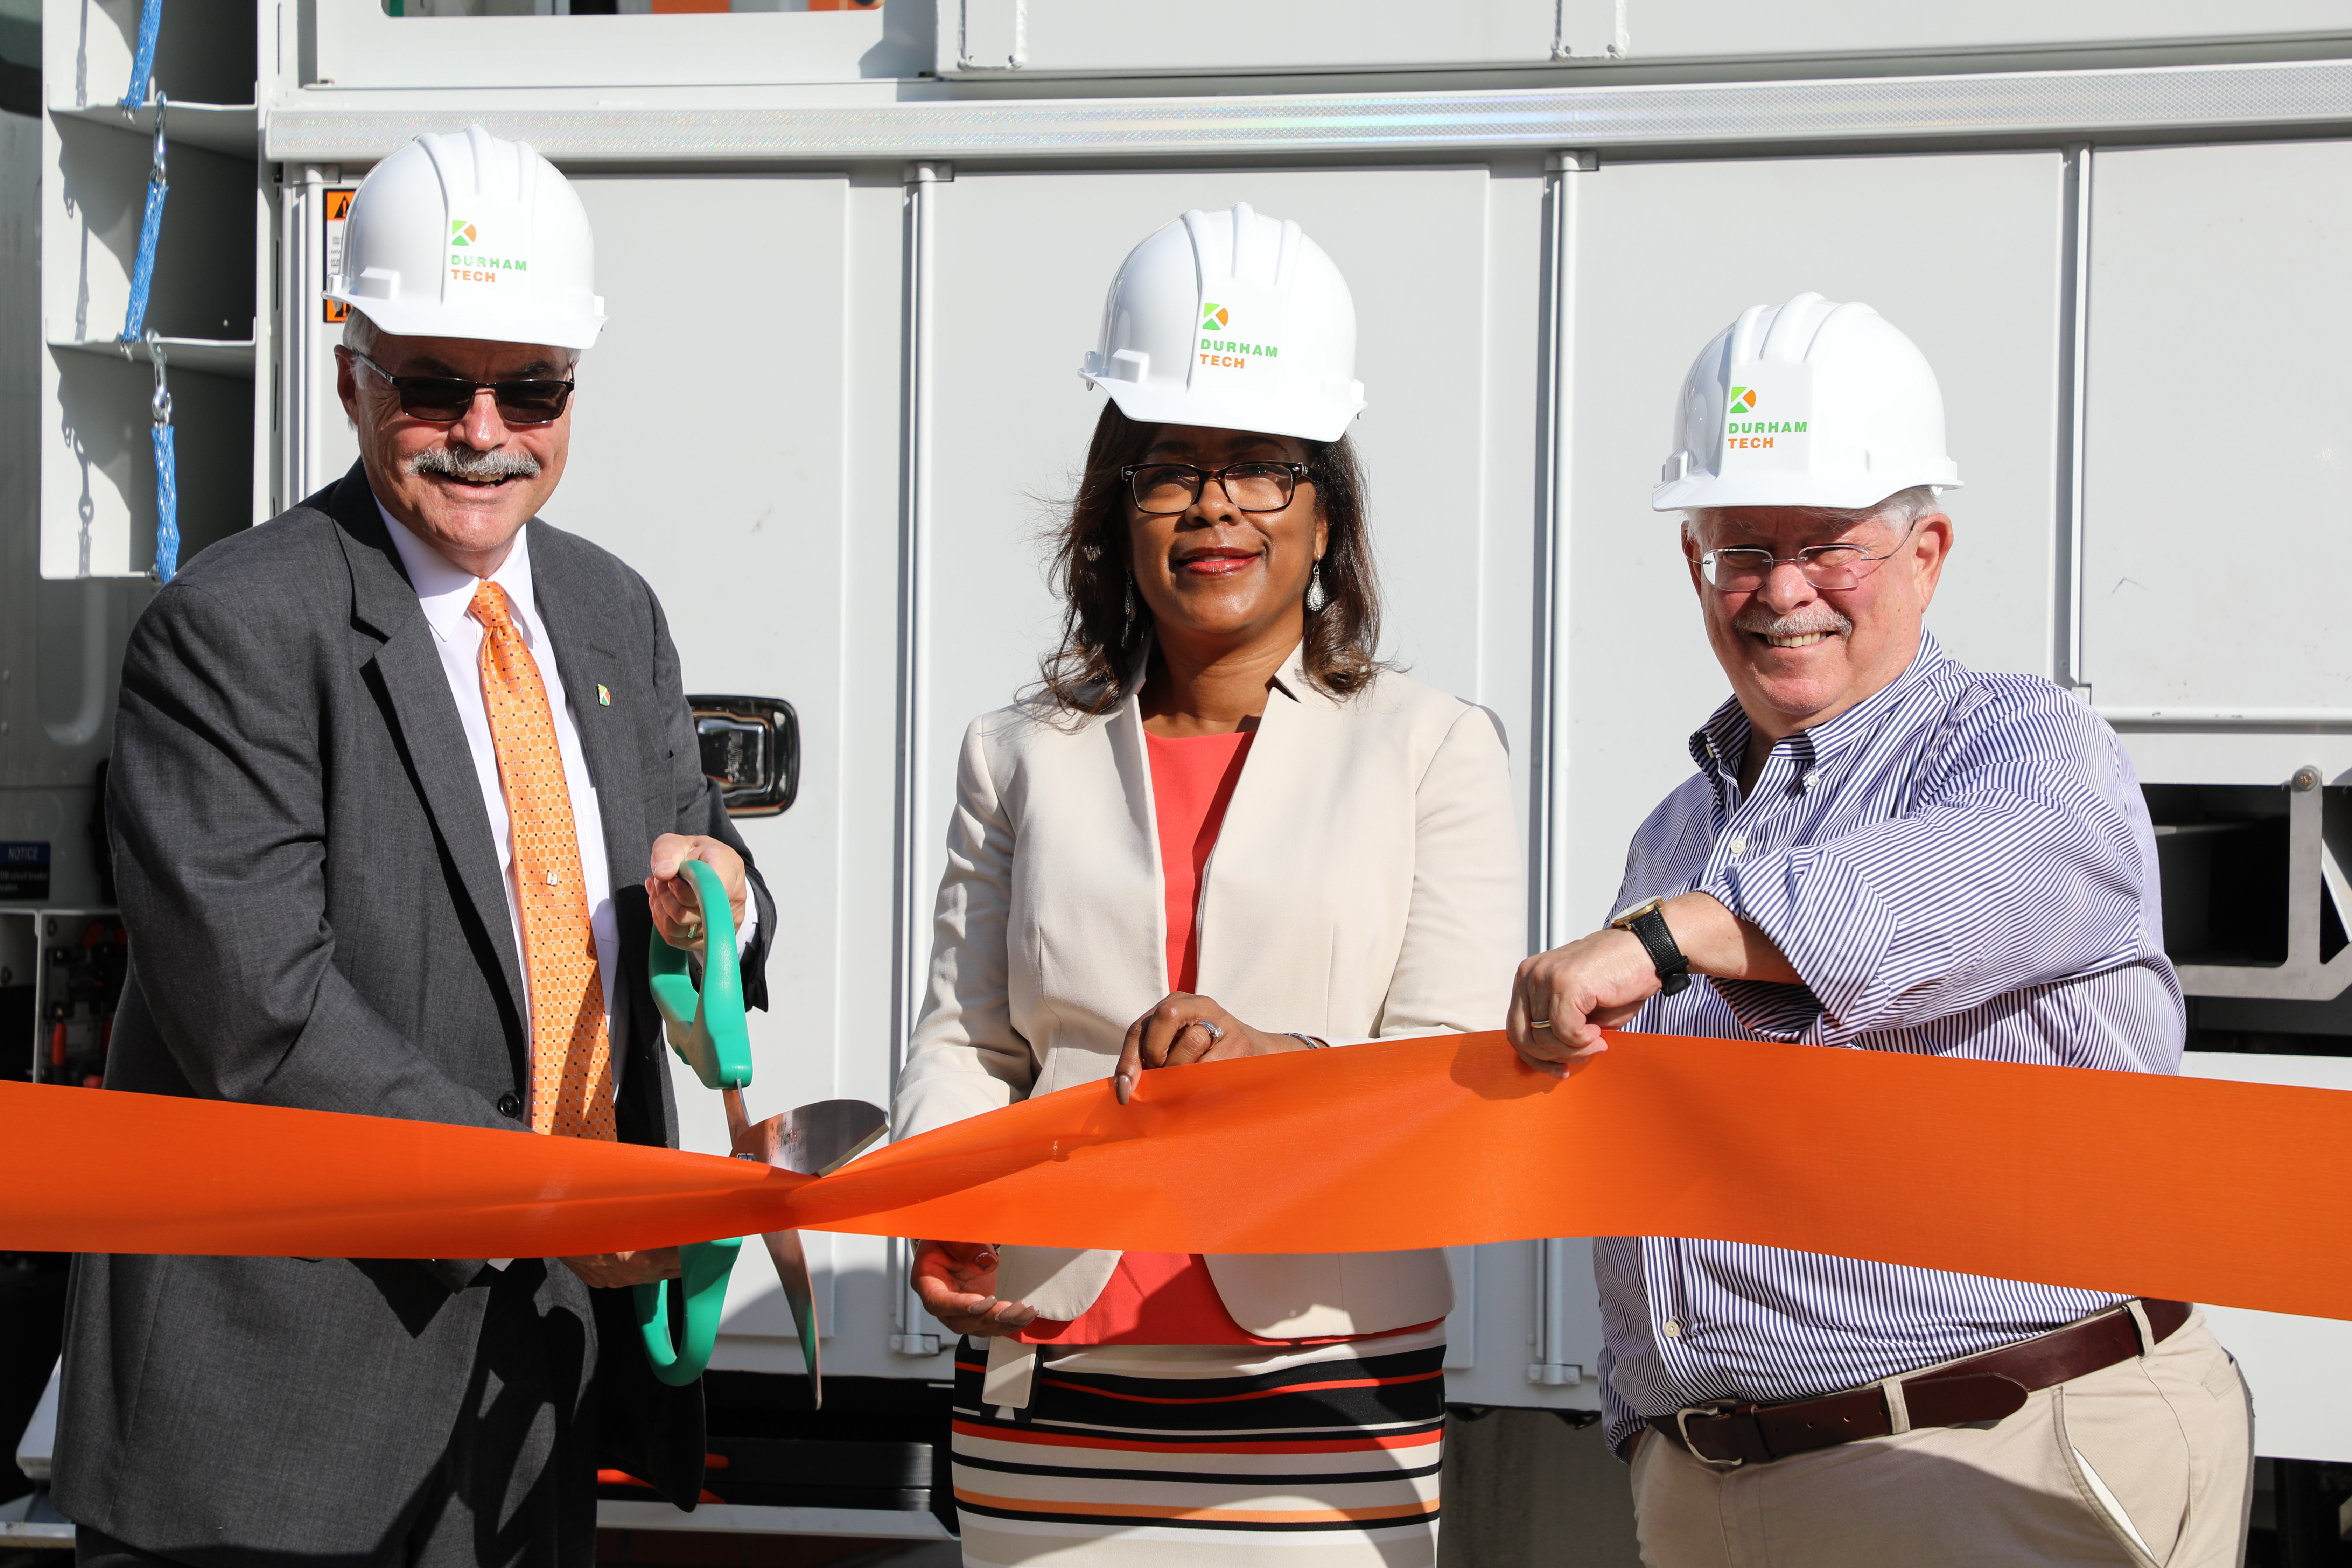 Durham Tech President Bill Ingram, Duke Energy District Manager Indira Everett, and Durham Tech Board of Trustees Chairman John Burness cut a ribbon in celebration of the new Electrical Line Technician Program at Durham Tech.